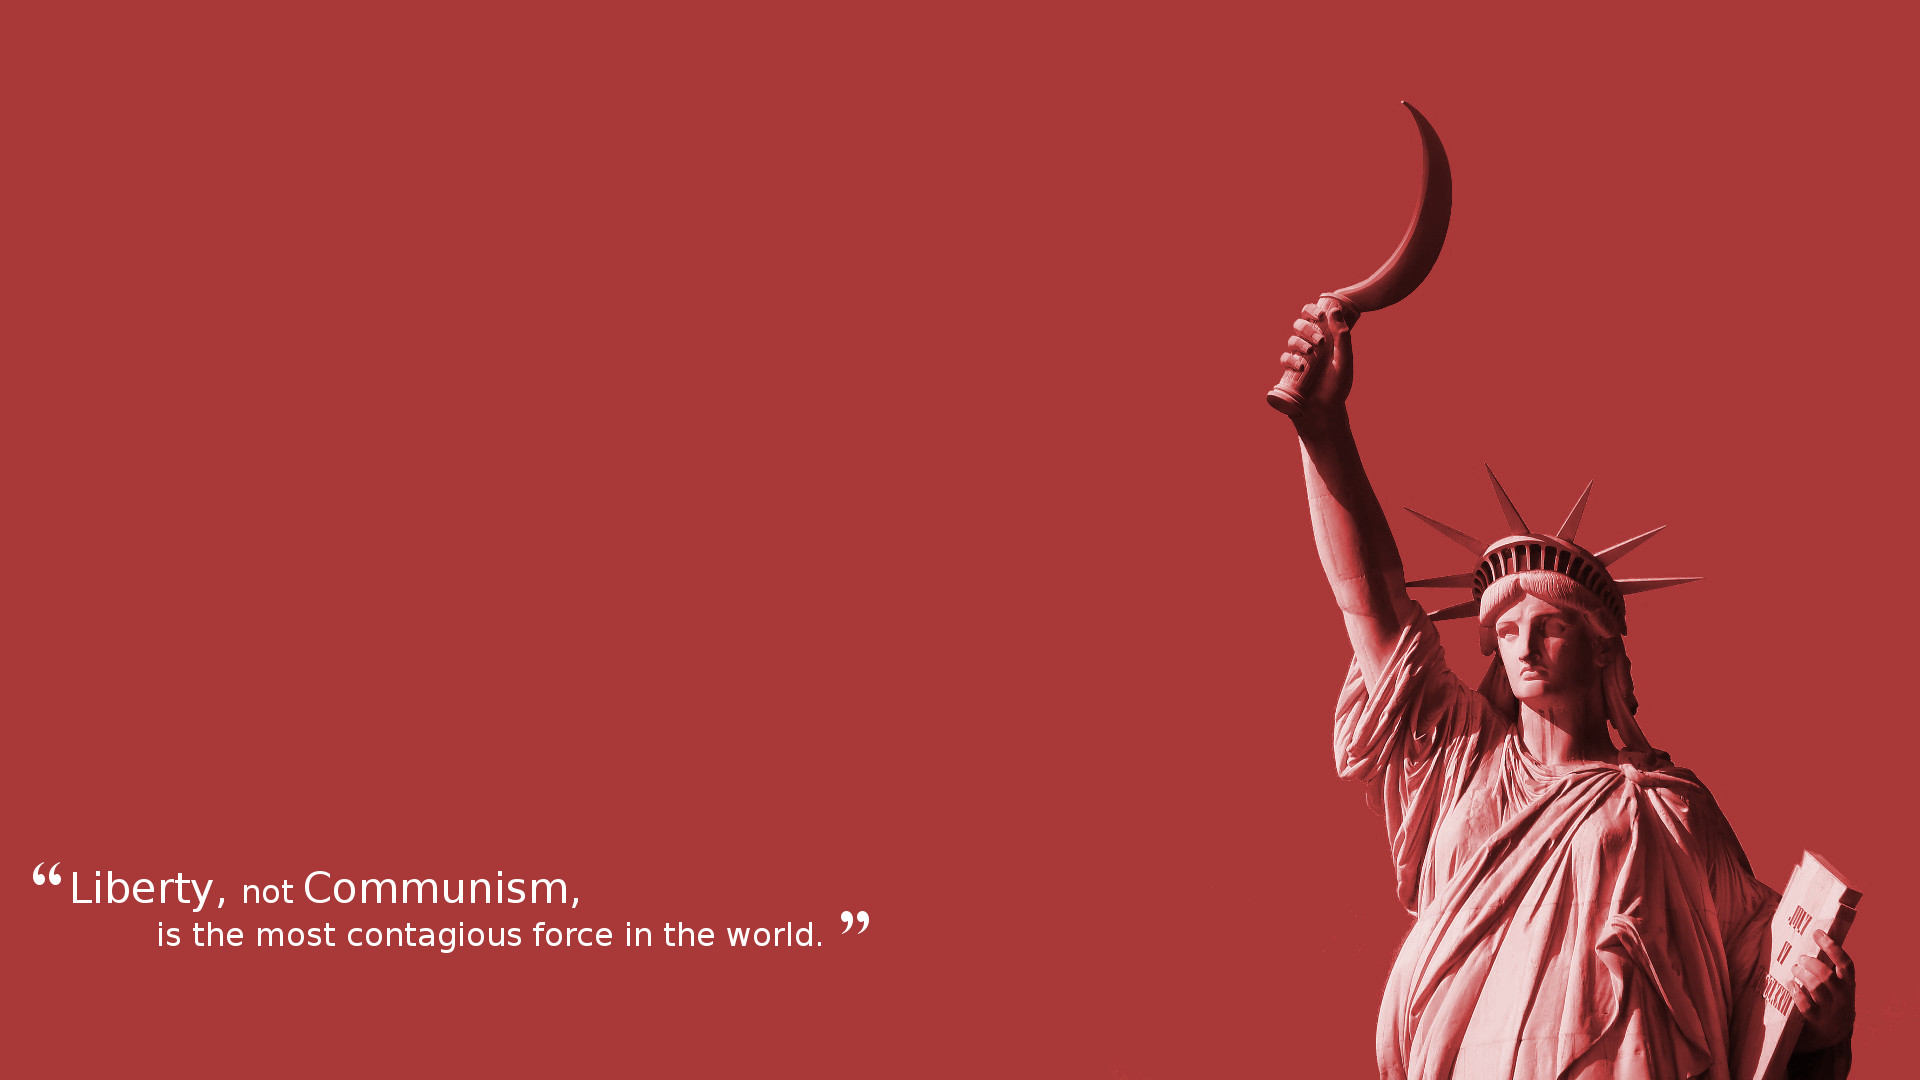 1920x1080 Communist Quotes Computer Wallpapers Free - Download Communist Quotes  Computer Wallpapers